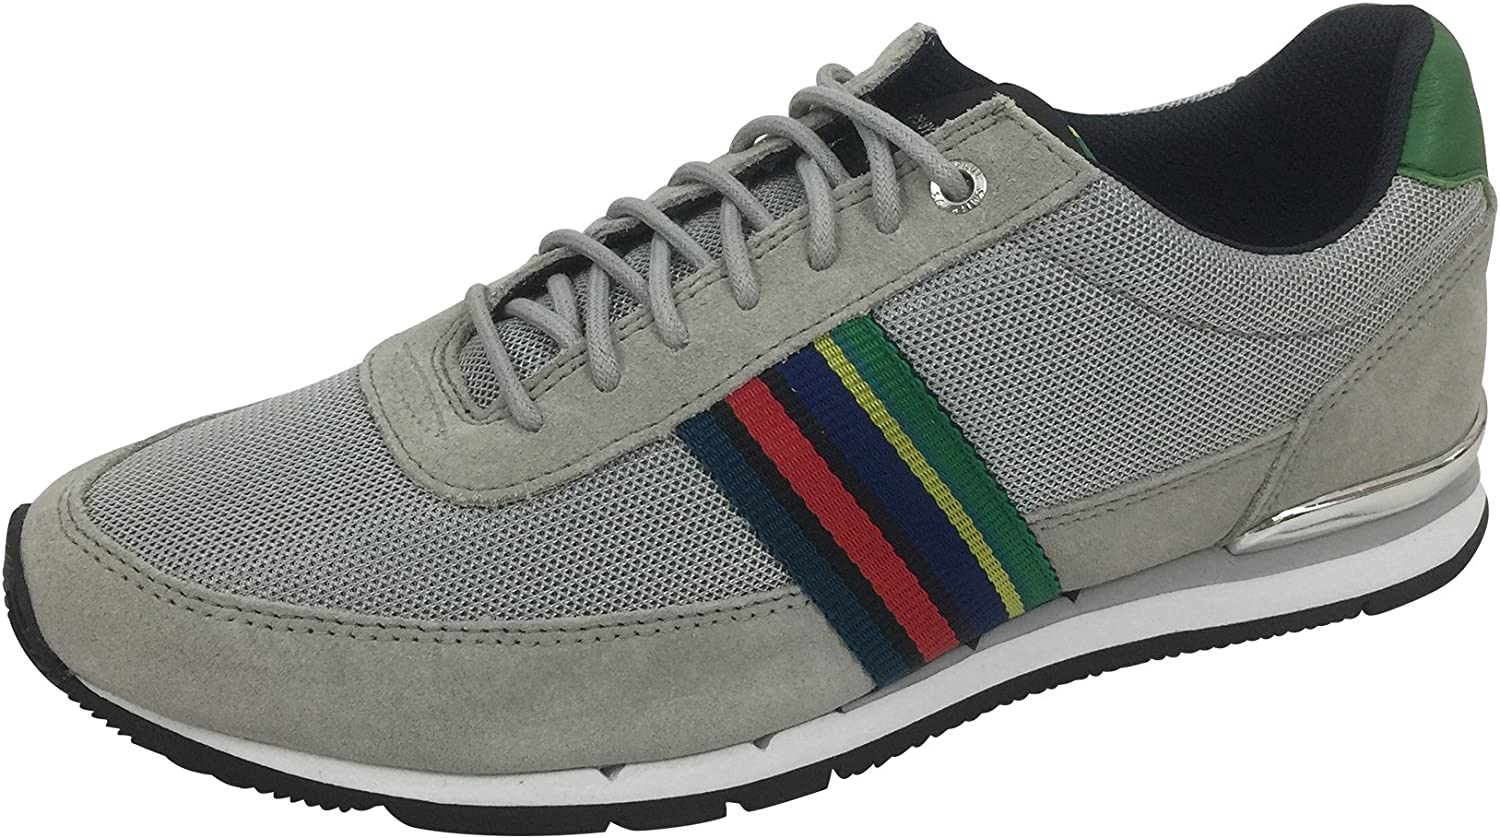 94771c980 Paul Smith Svenson Lace Up Trainer in in in Light Grey dee807 ...